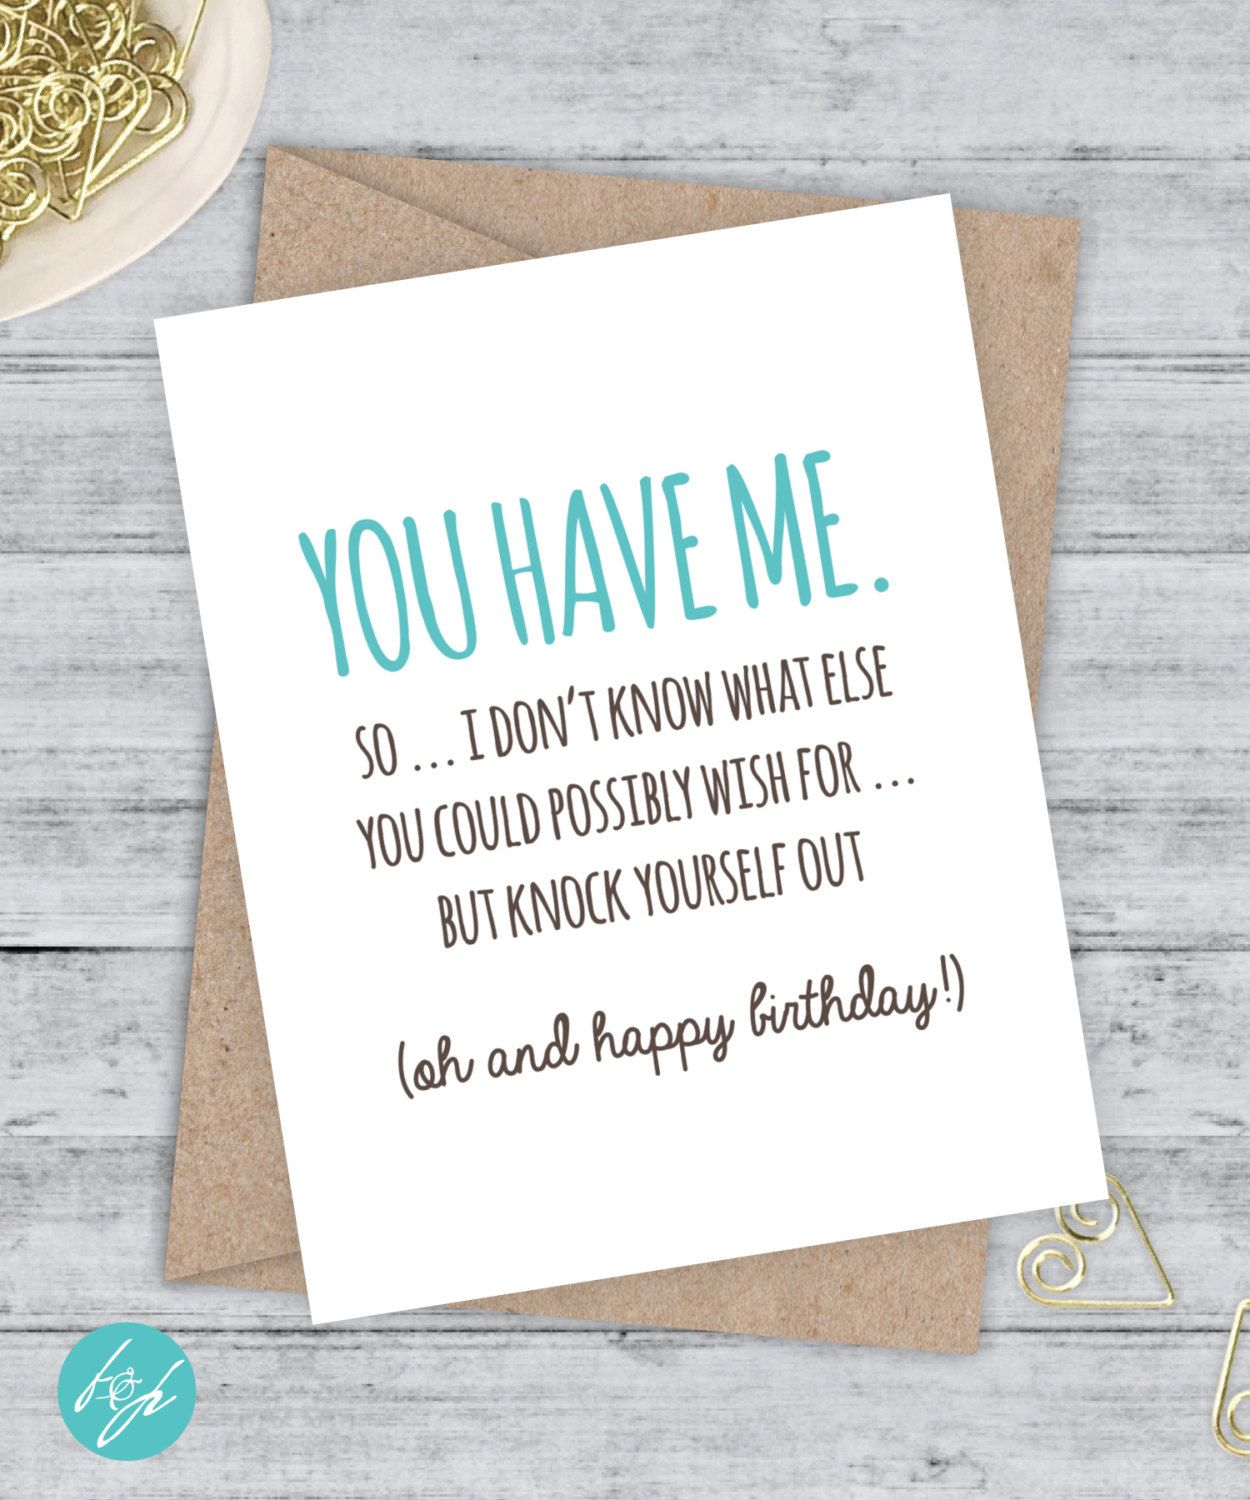 boyfriend birthday birthday card funny boyfriend card. Black Bedroom Furniture Sets. Home Design Ideas